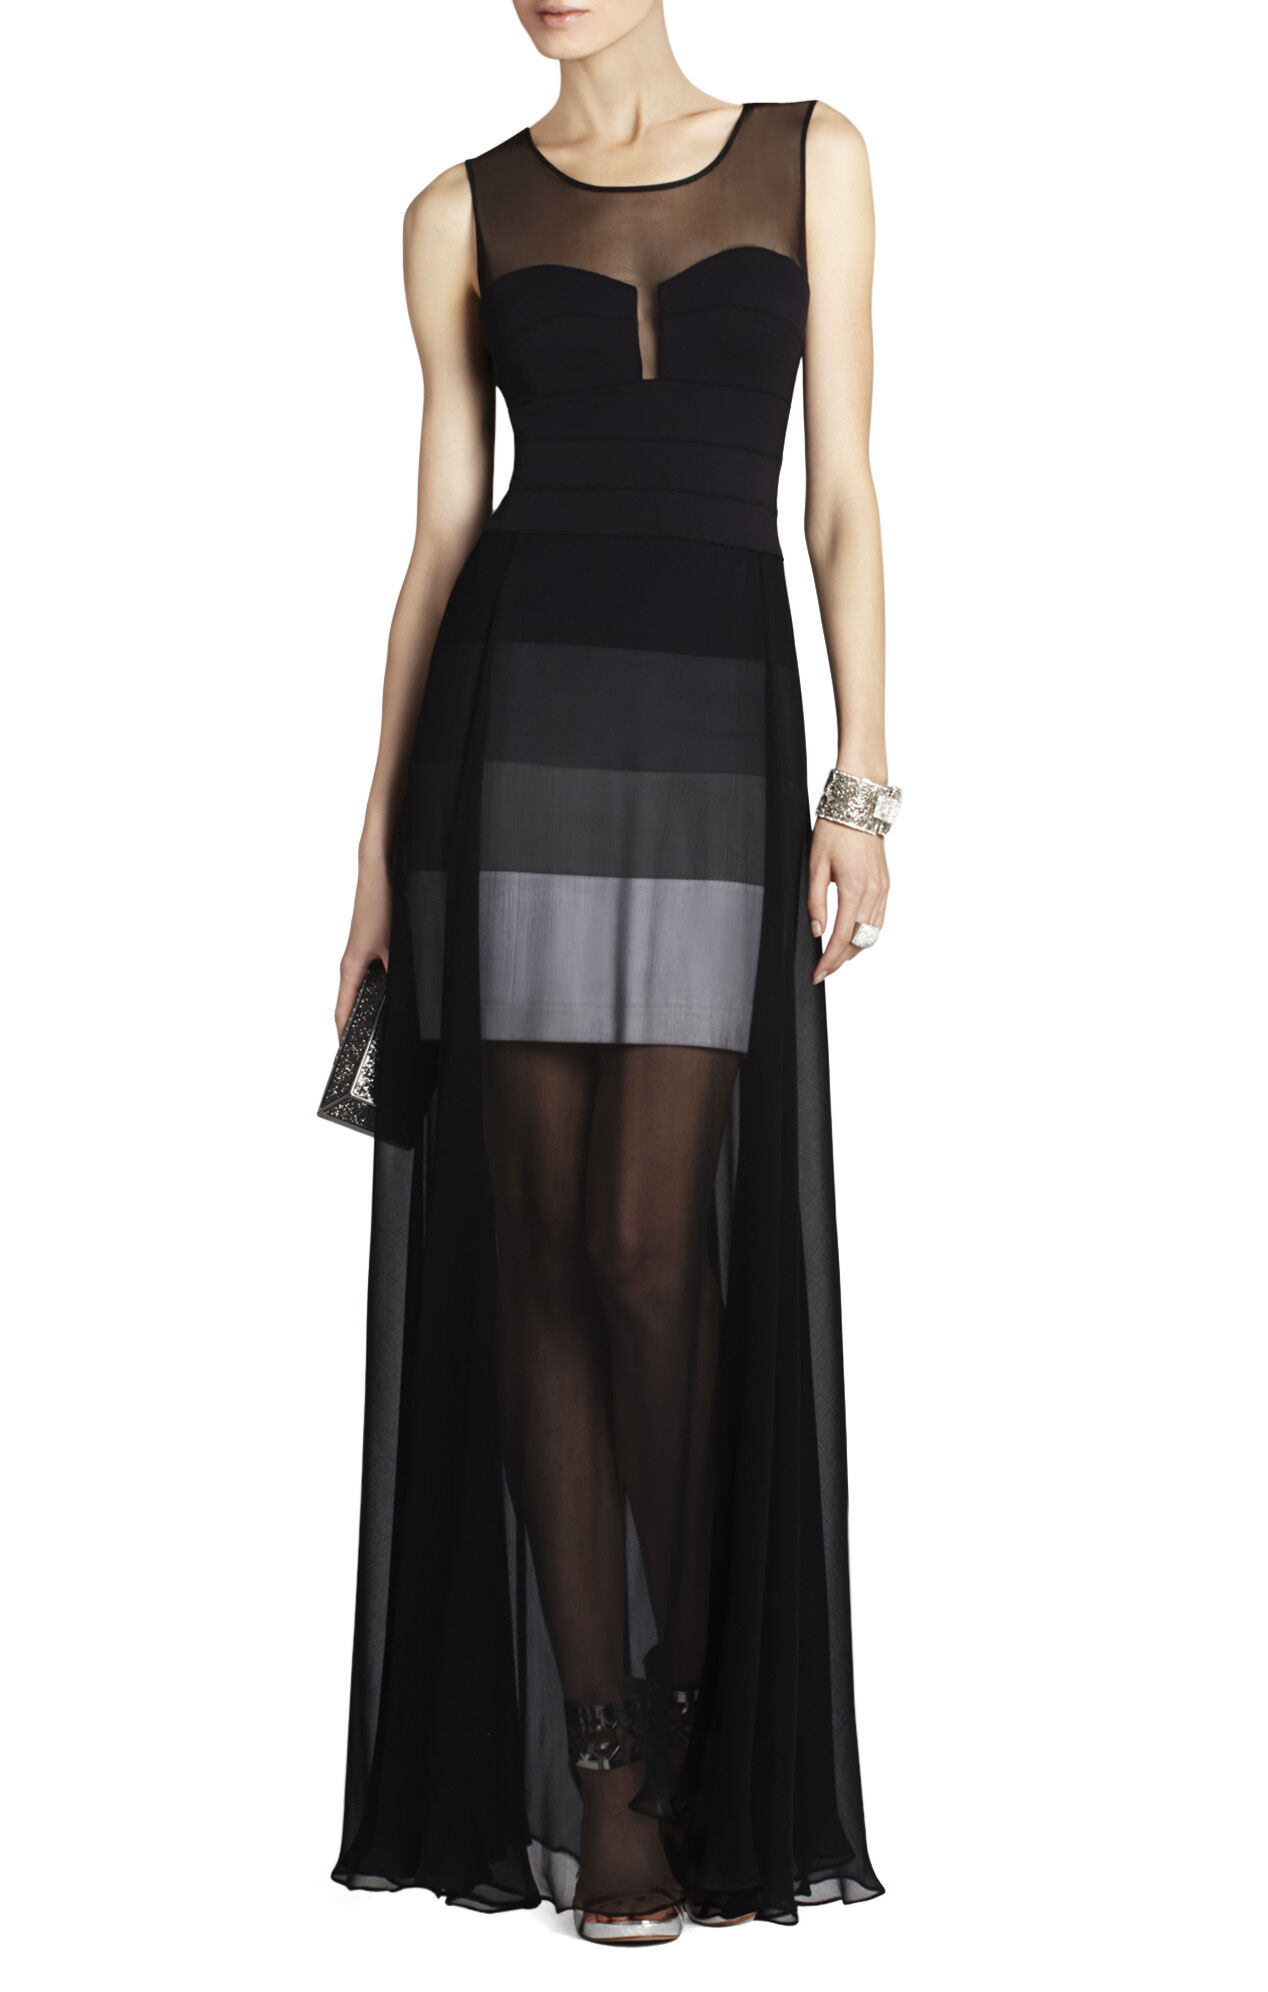 Alai Banded Knit Dress with Chiffon Overlay